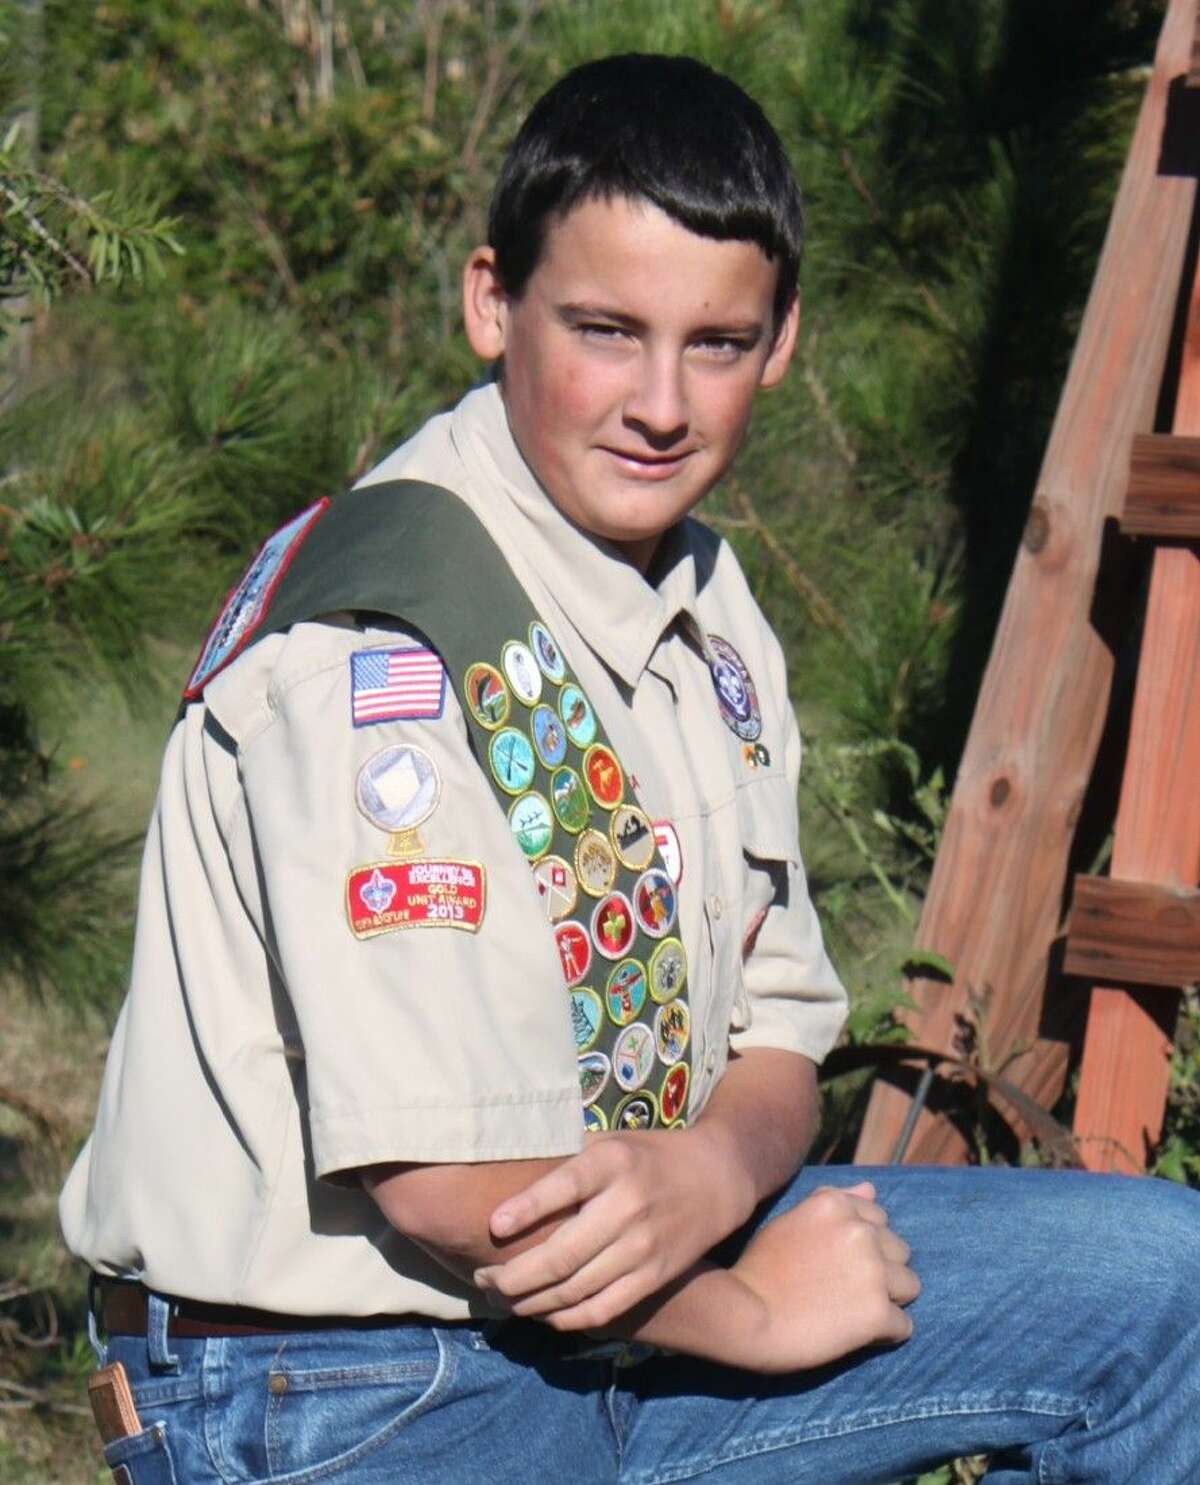 Wyatt McKeever, a sophomore at Waller High School, earned the Eagle Scout Award.